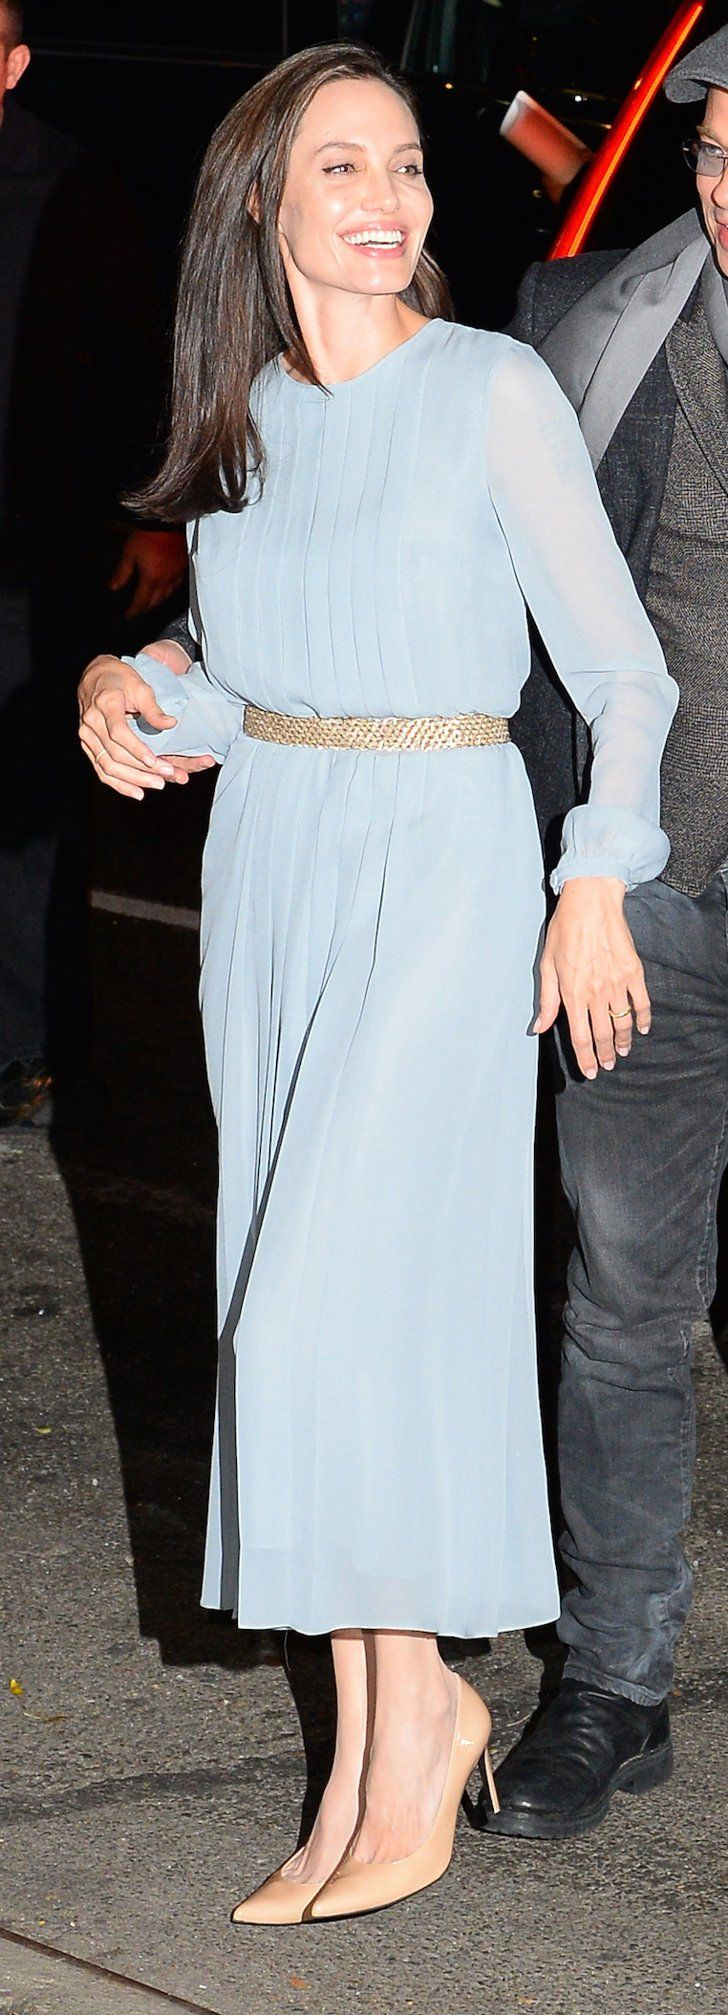 Angelina Jolie Just Wore a Ladylike Look We Never Saw Coming